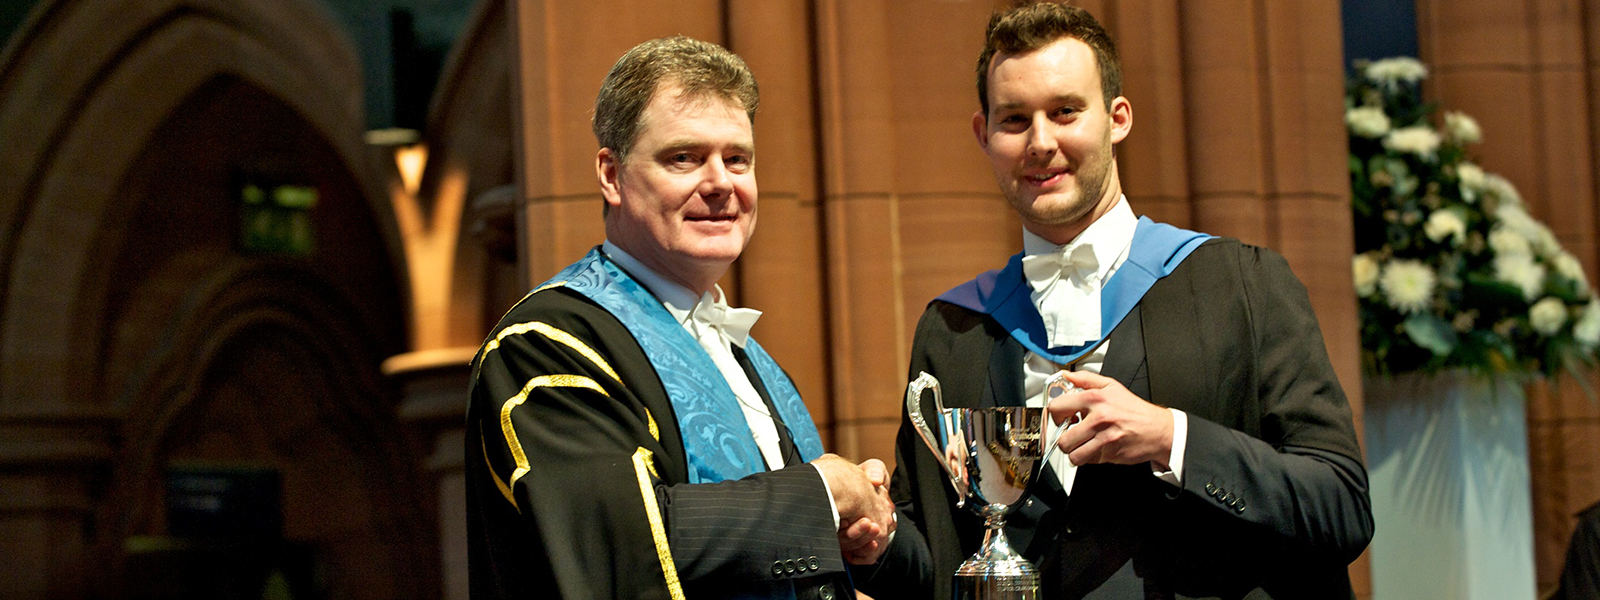 Craig Taylor being presented with the 2014 Strathclyde People Award trophy